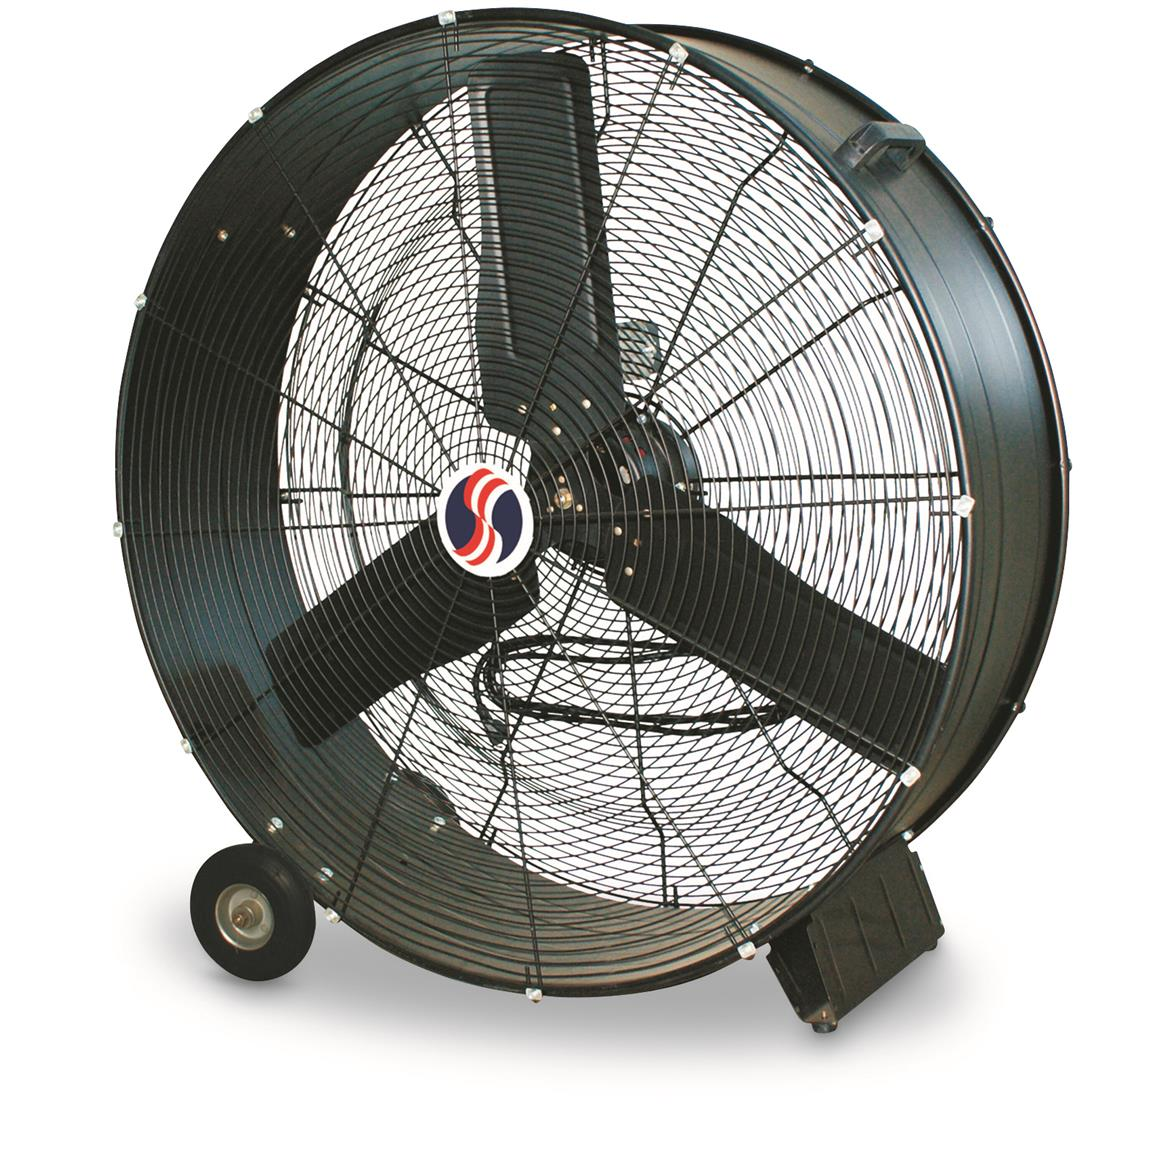 "Q Standard 30"" Direct Drive Drum Fan"